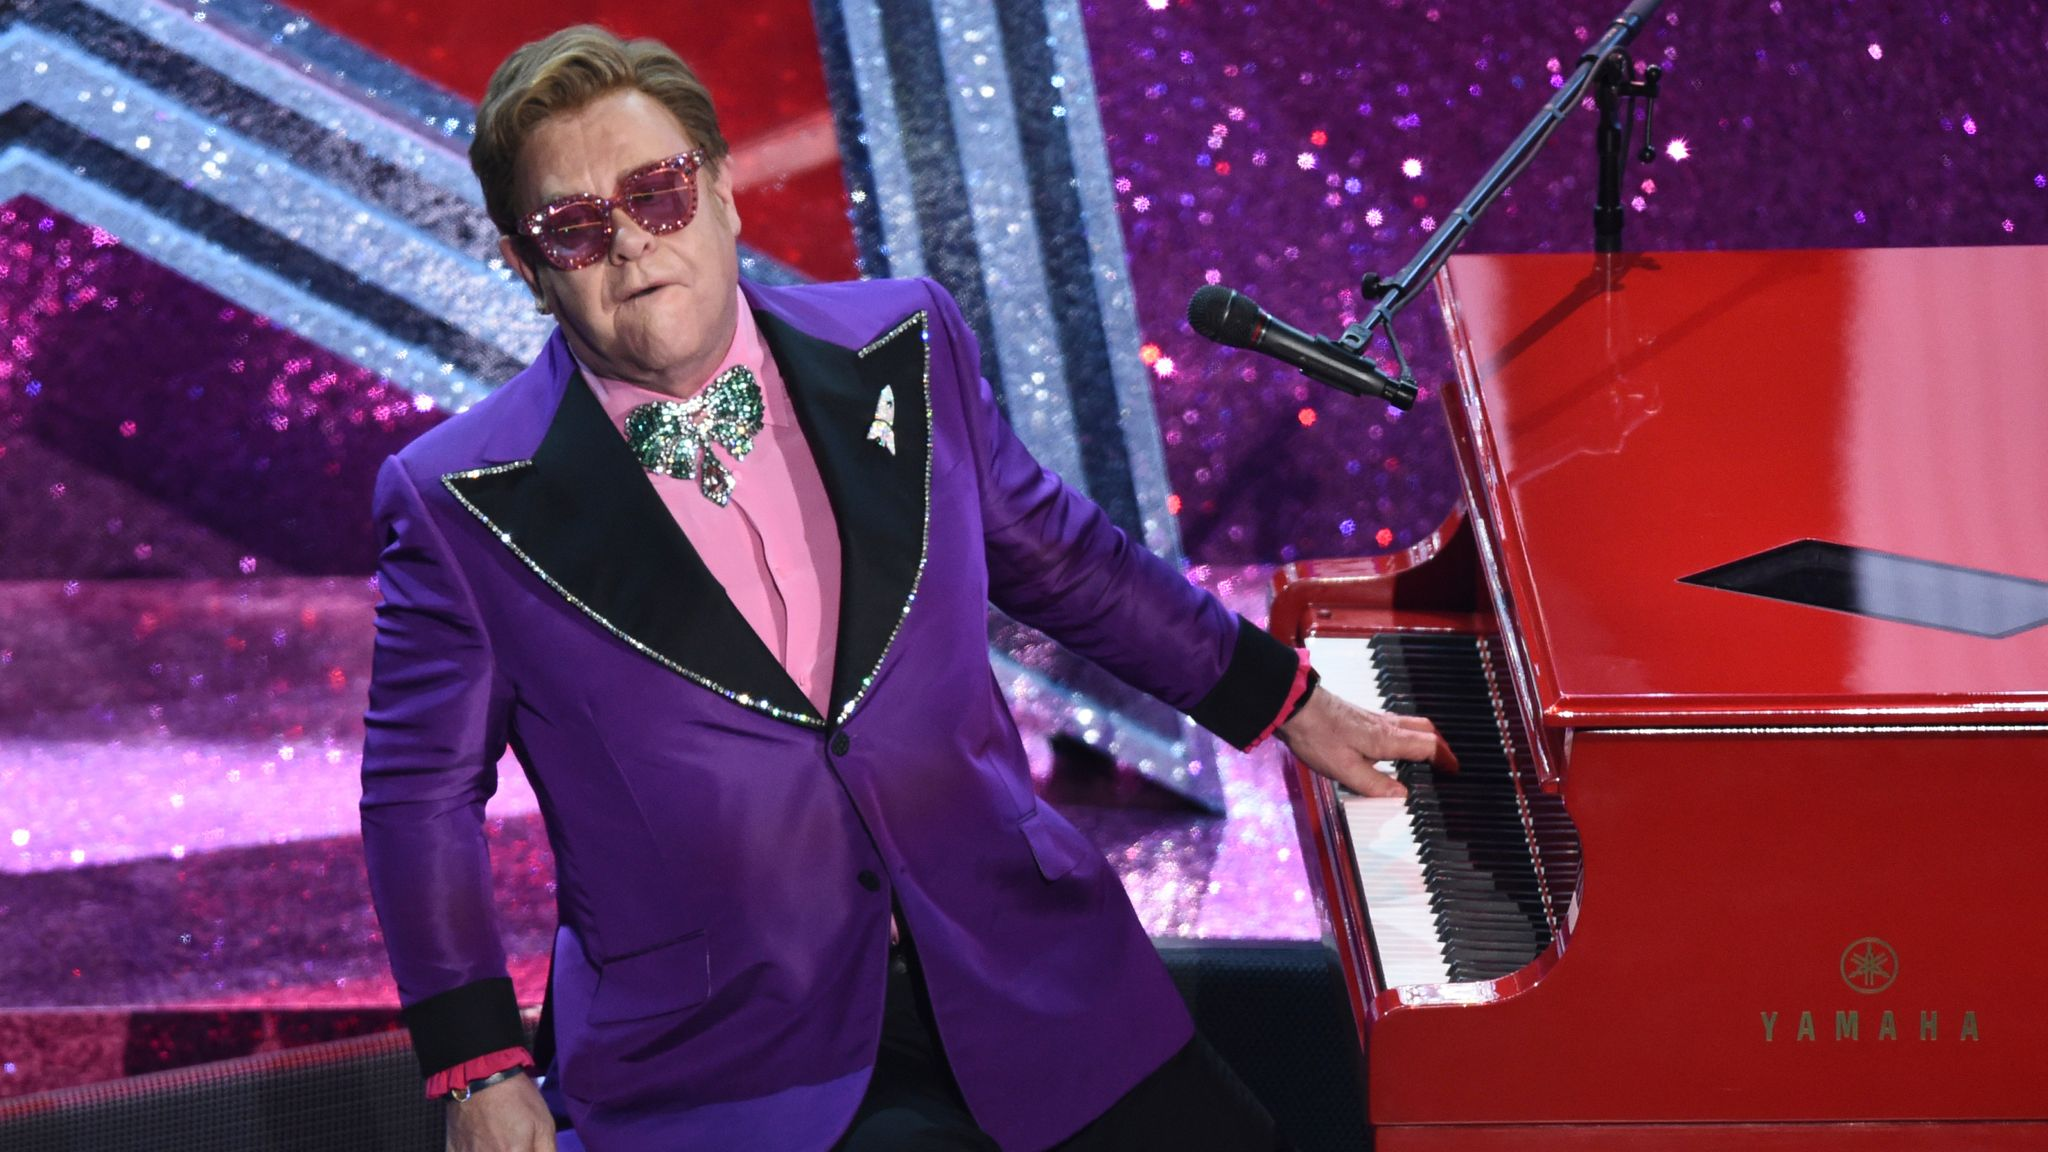 Sir Elton was one of Archewell Audio's first guests. Pic: AP Photo/Chris Pizzello